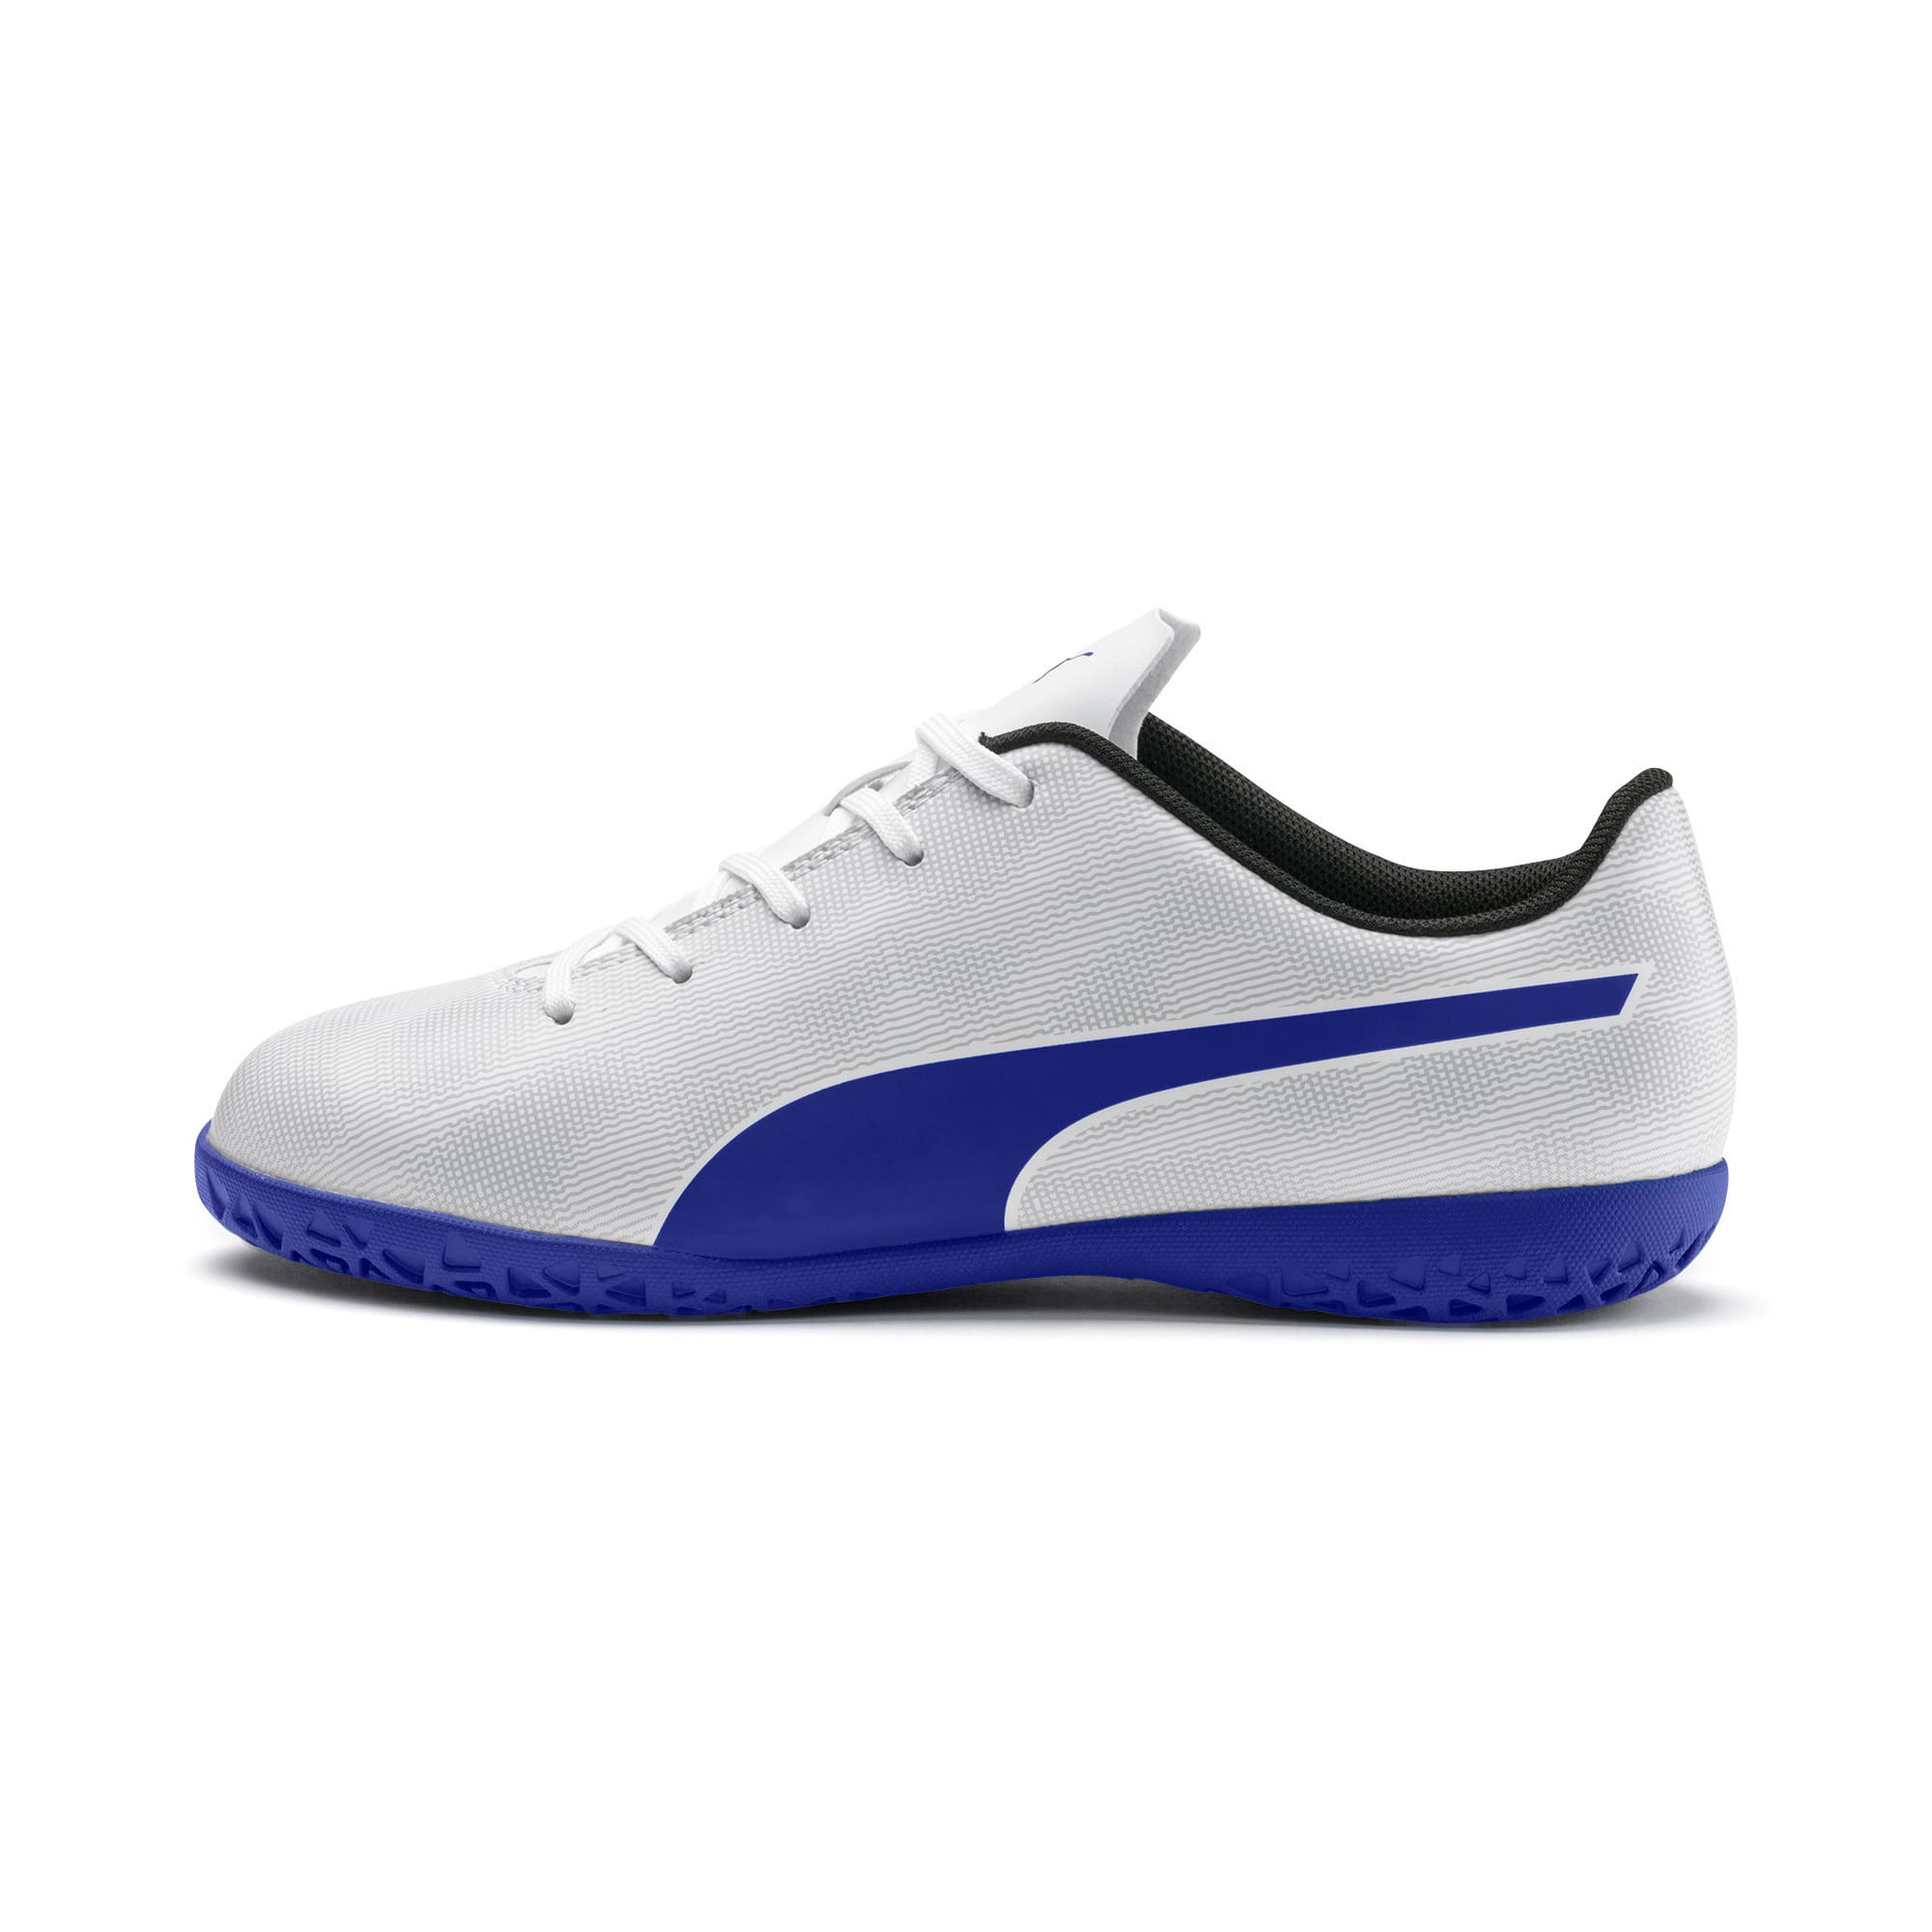 Thumbnail 1 of Rapido IT Youth Football Boots, White-Royal Blue-Light Gray, medium-IND